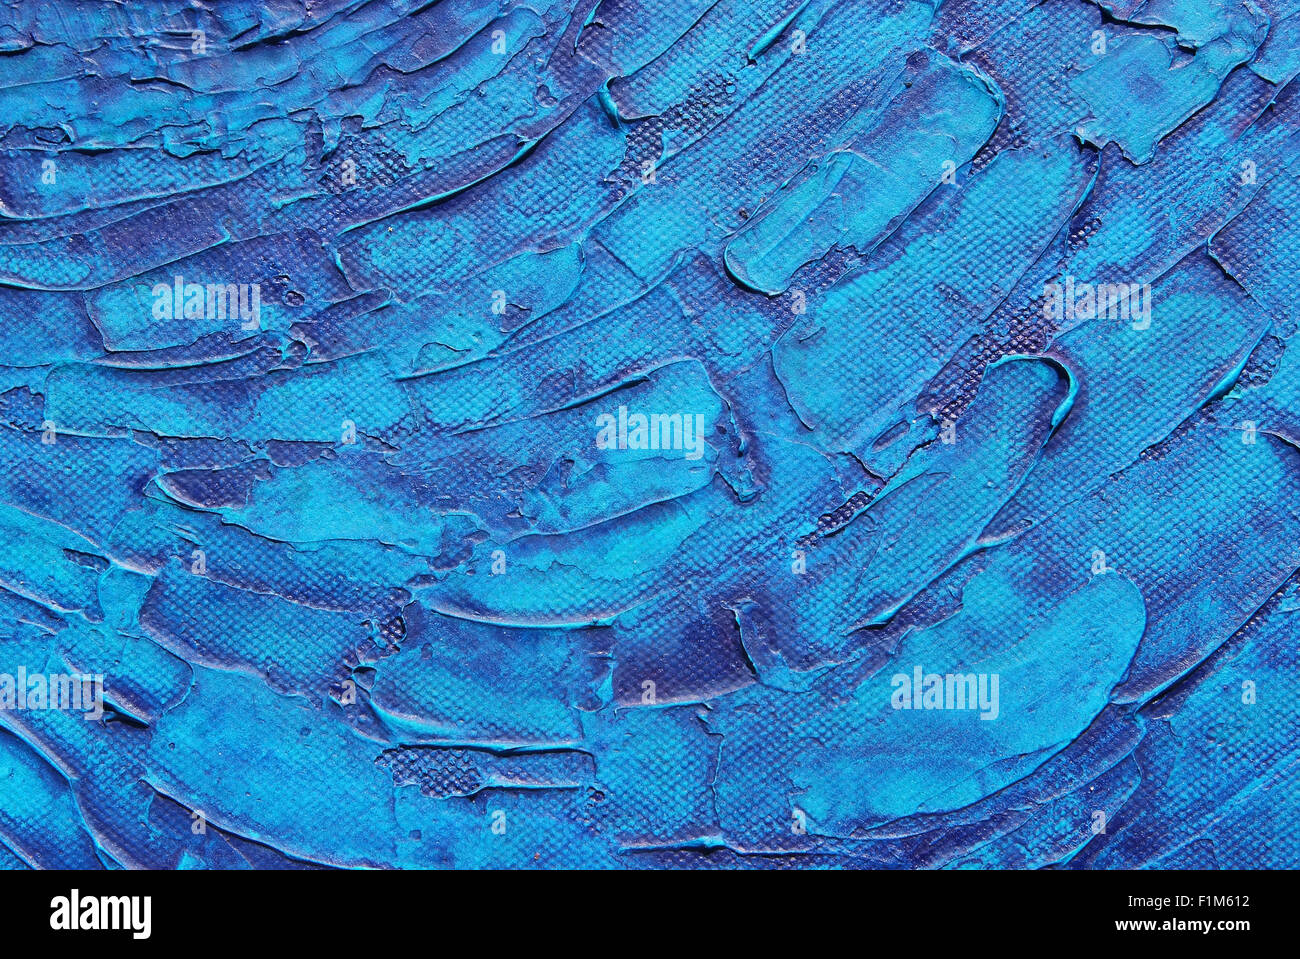 Blue texture background of acrylic painting on canvas Stock Photo